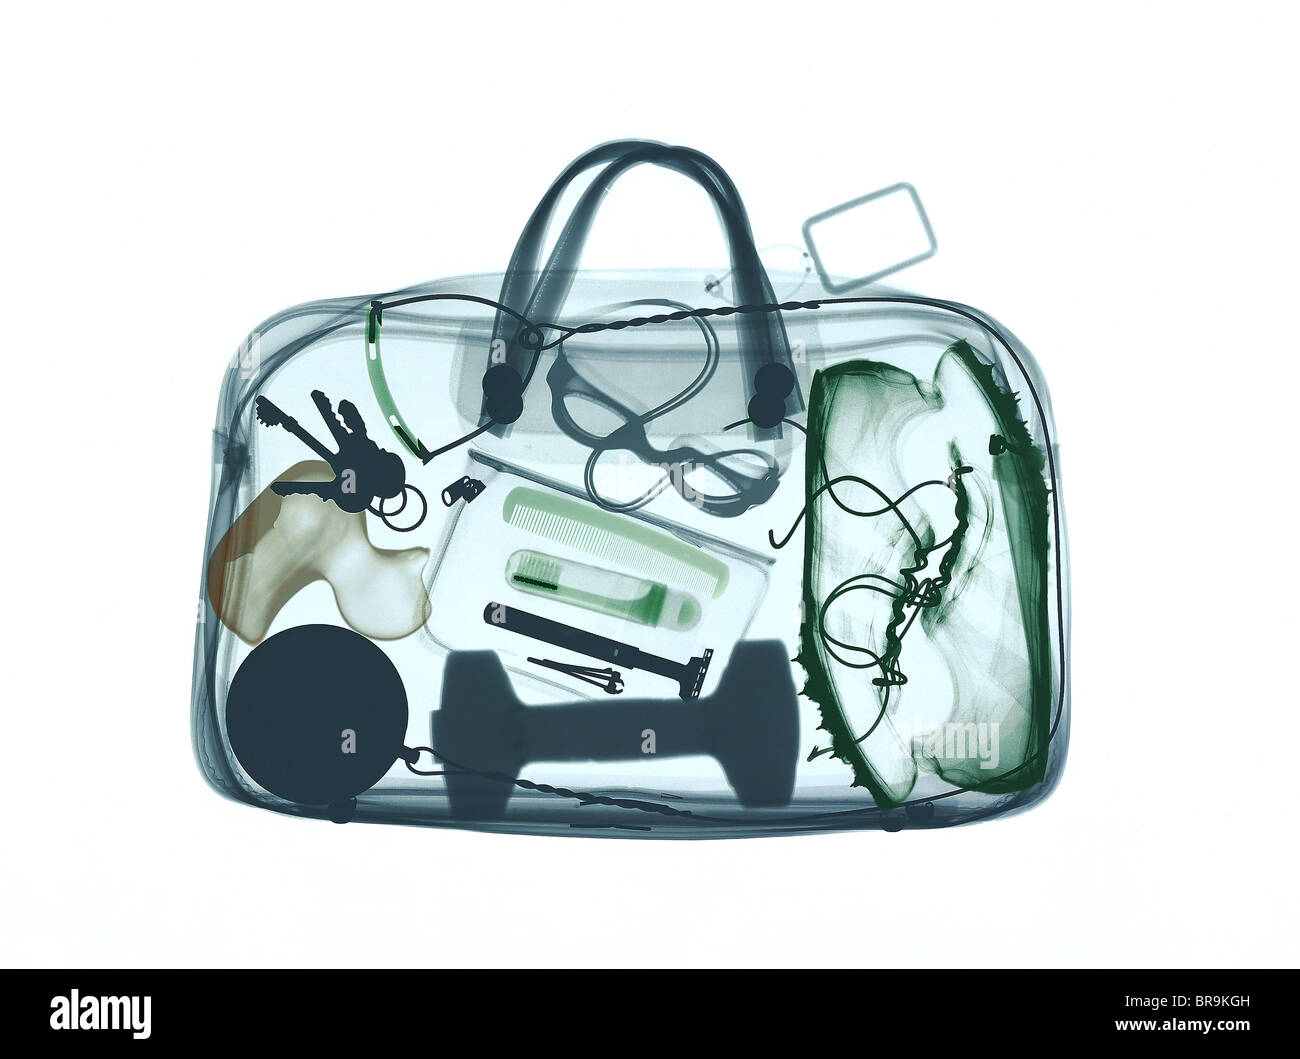 Xray image of bag containing sports equipment - Stock Image